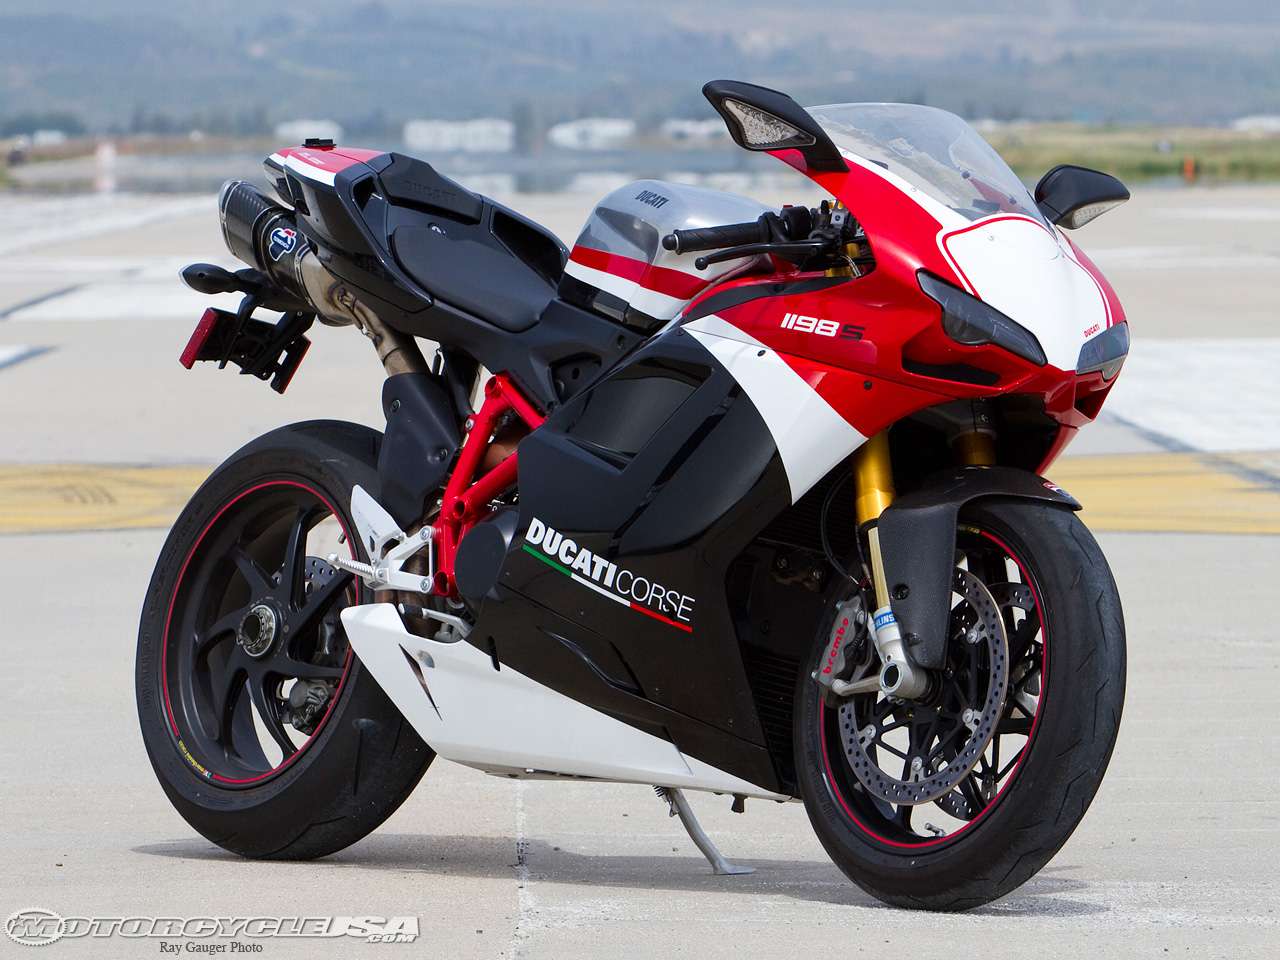 Ducati Superbike 1198 2010 wallpapers #13047